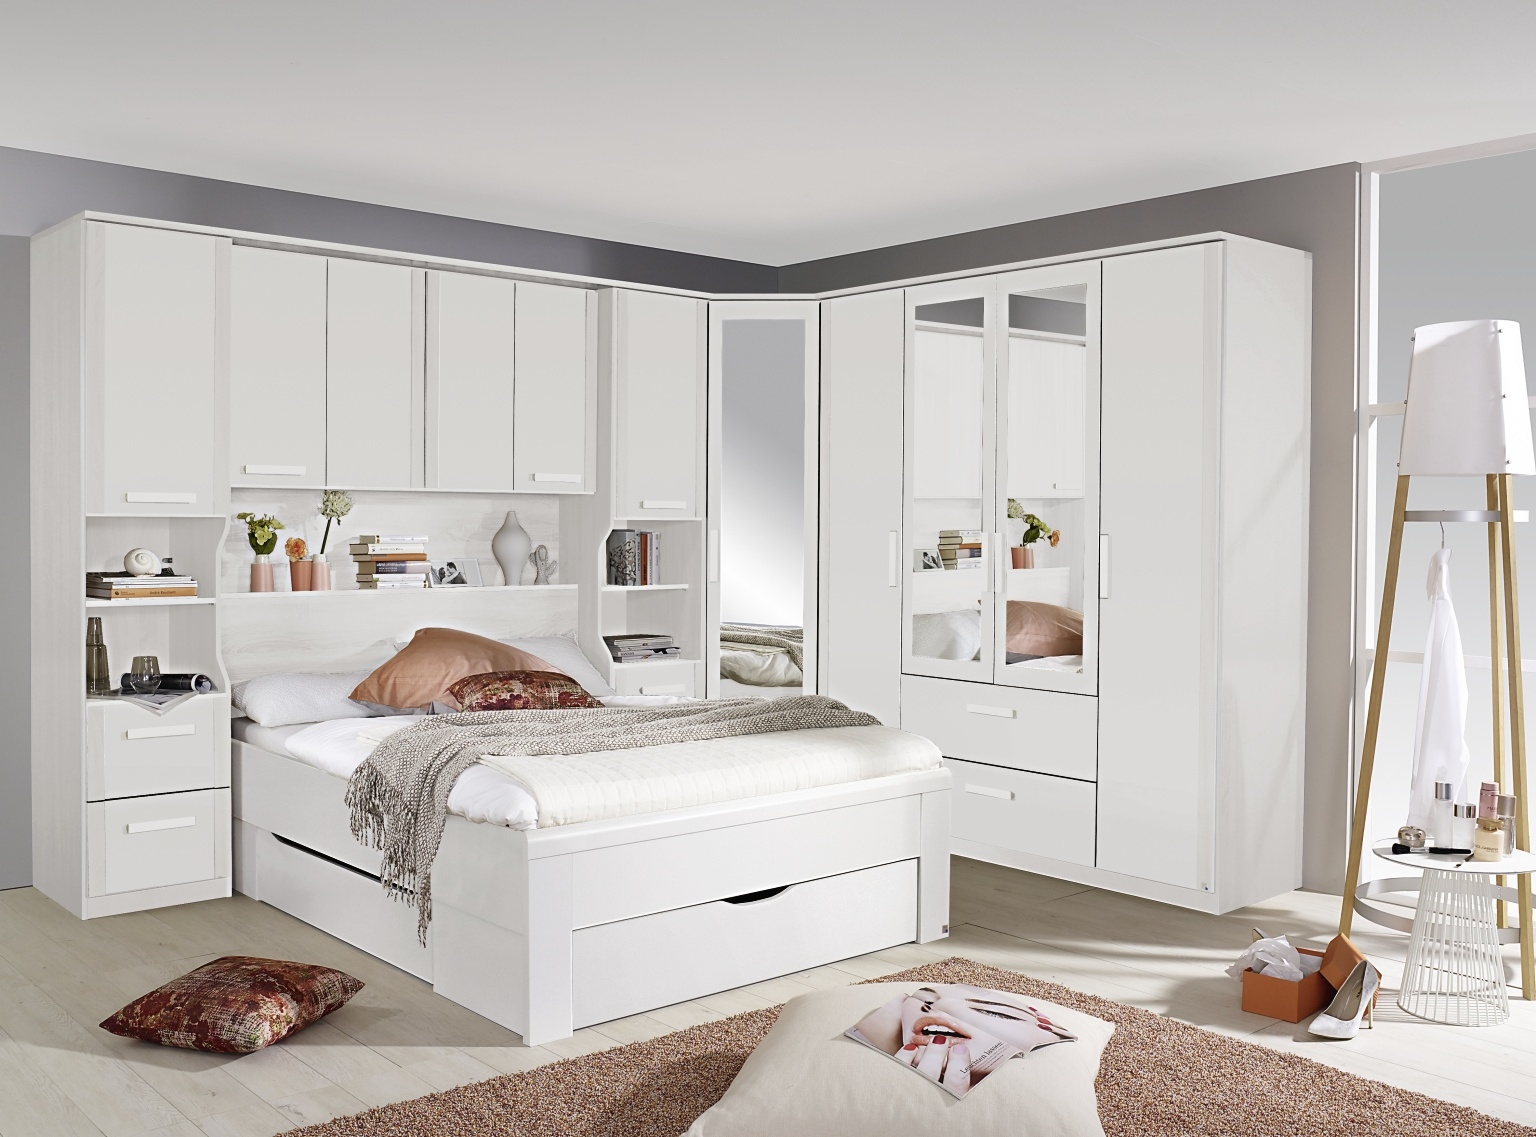 Picture of: Over Bed Storage Color